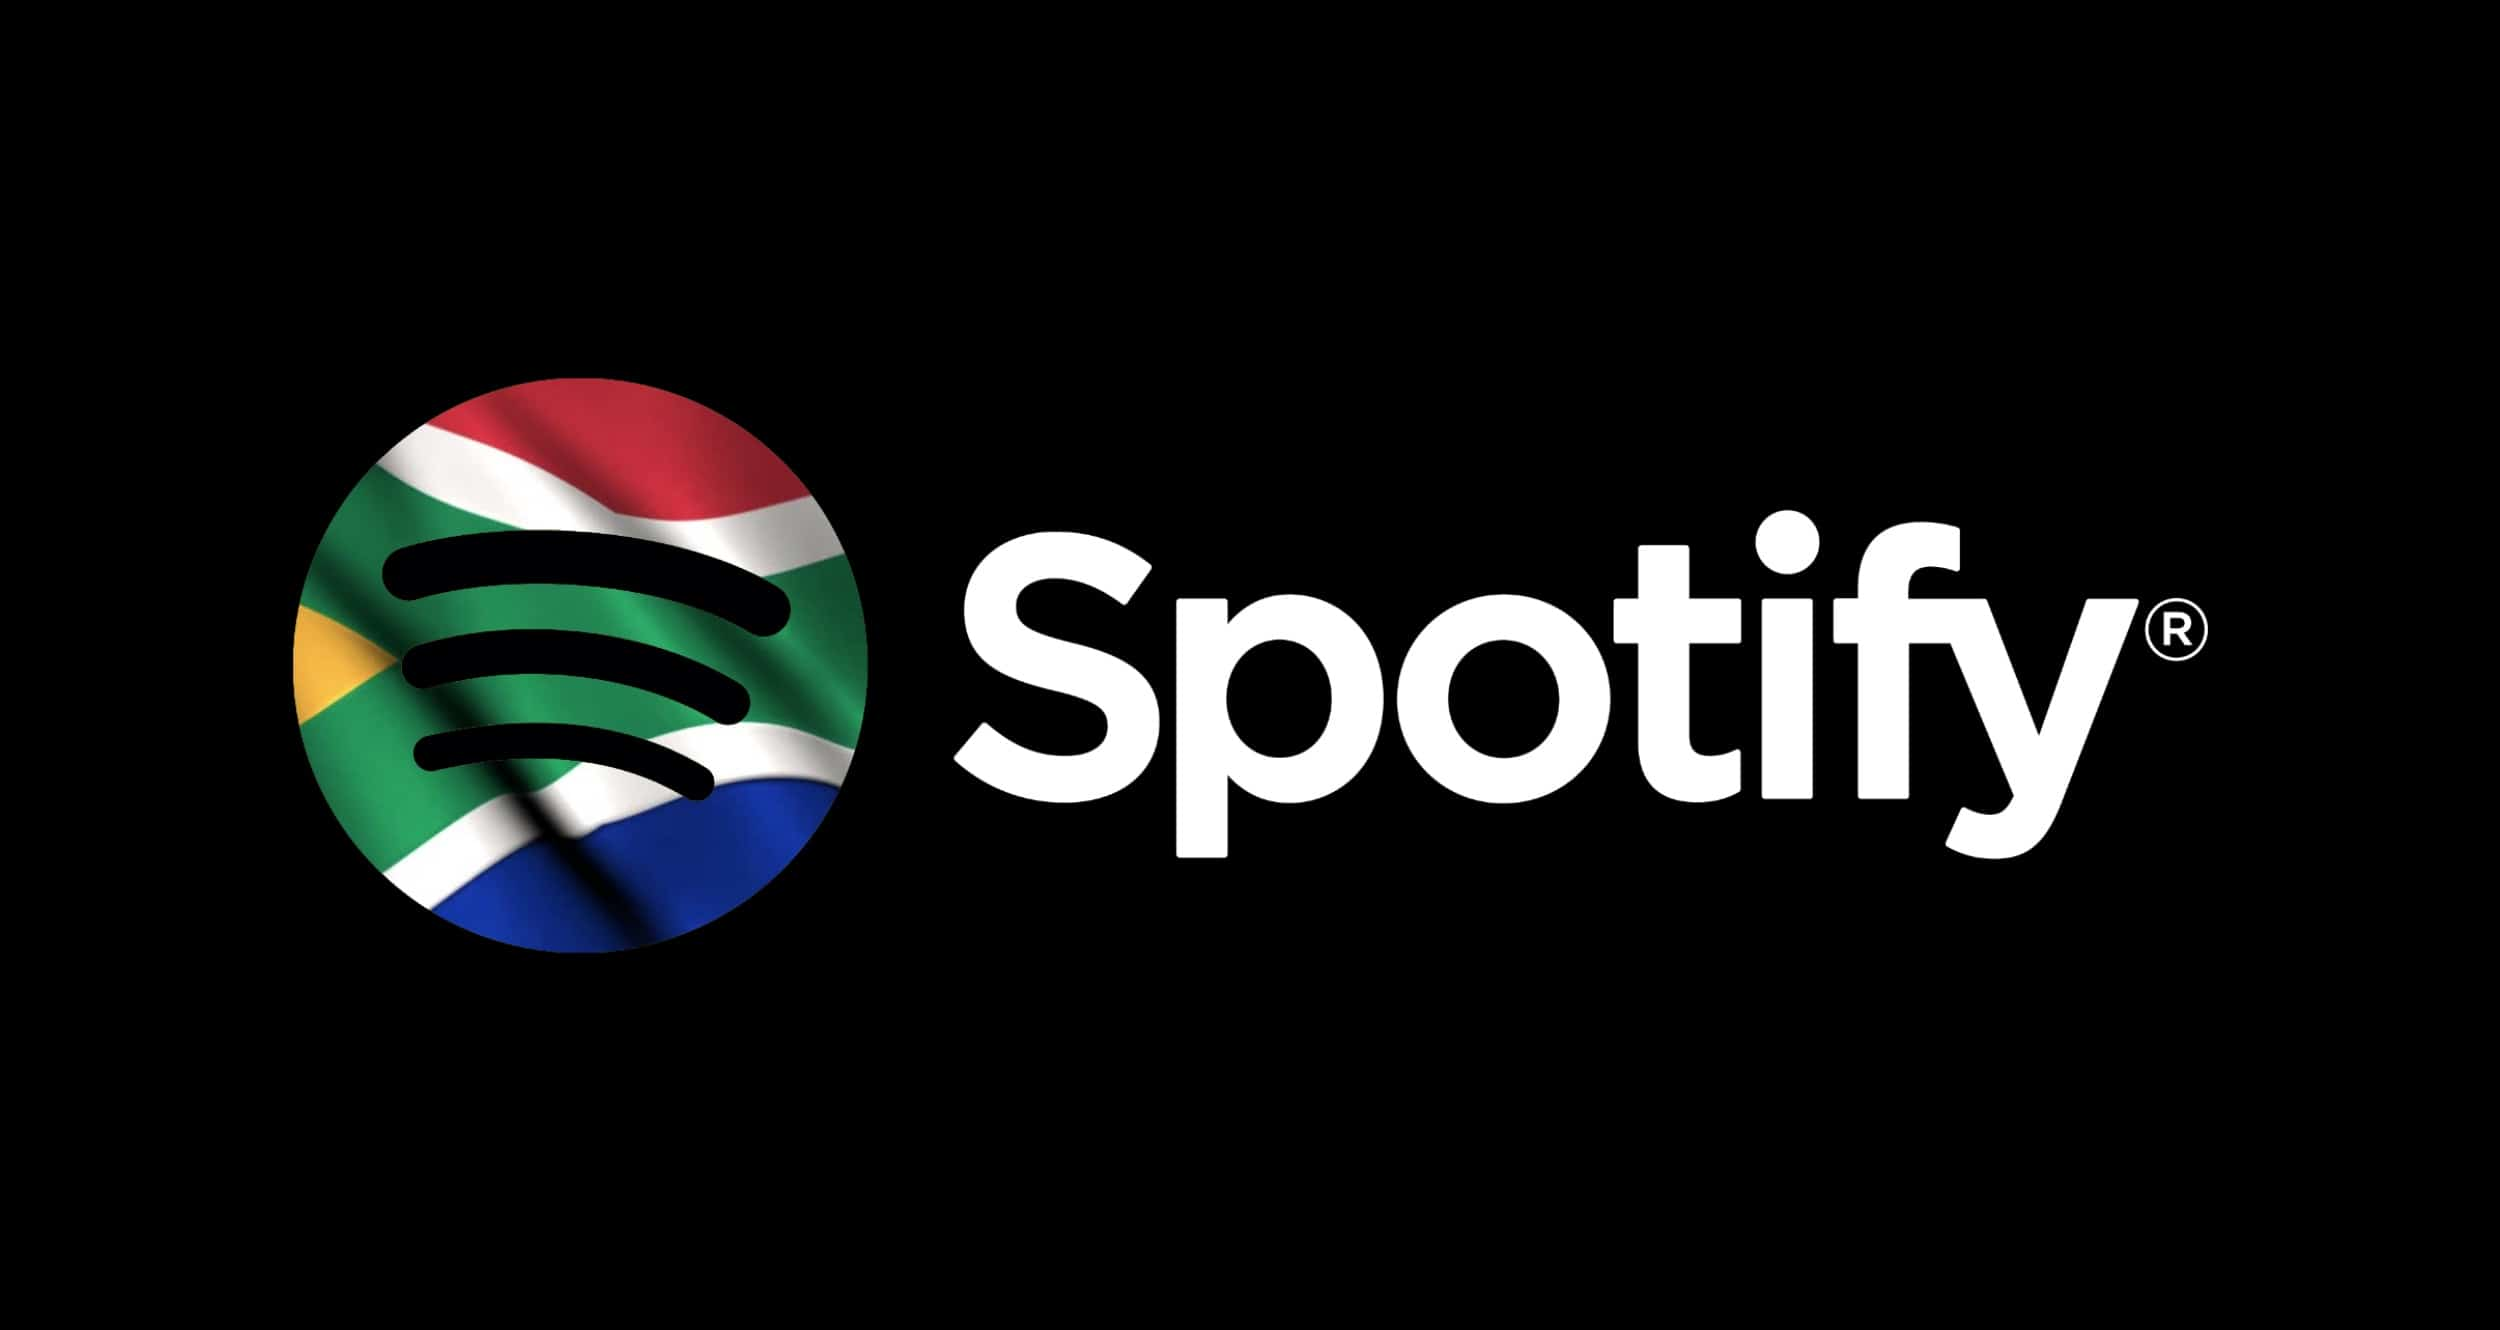 Spotify makes South African debut